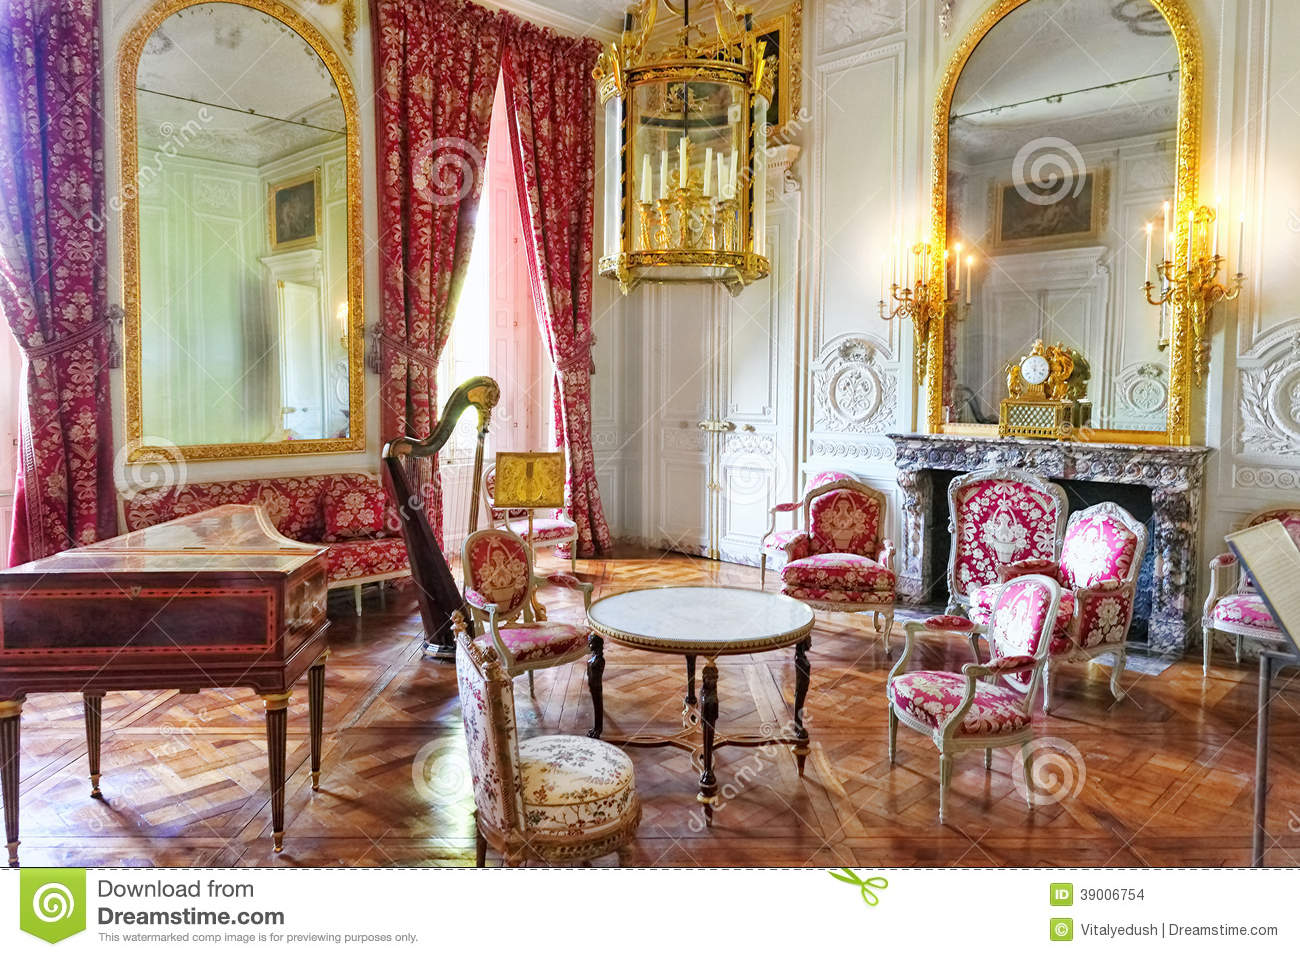 Ch teau int rieur de versailles paris france photo stock image 39006754 for Chateau de versailles interieur